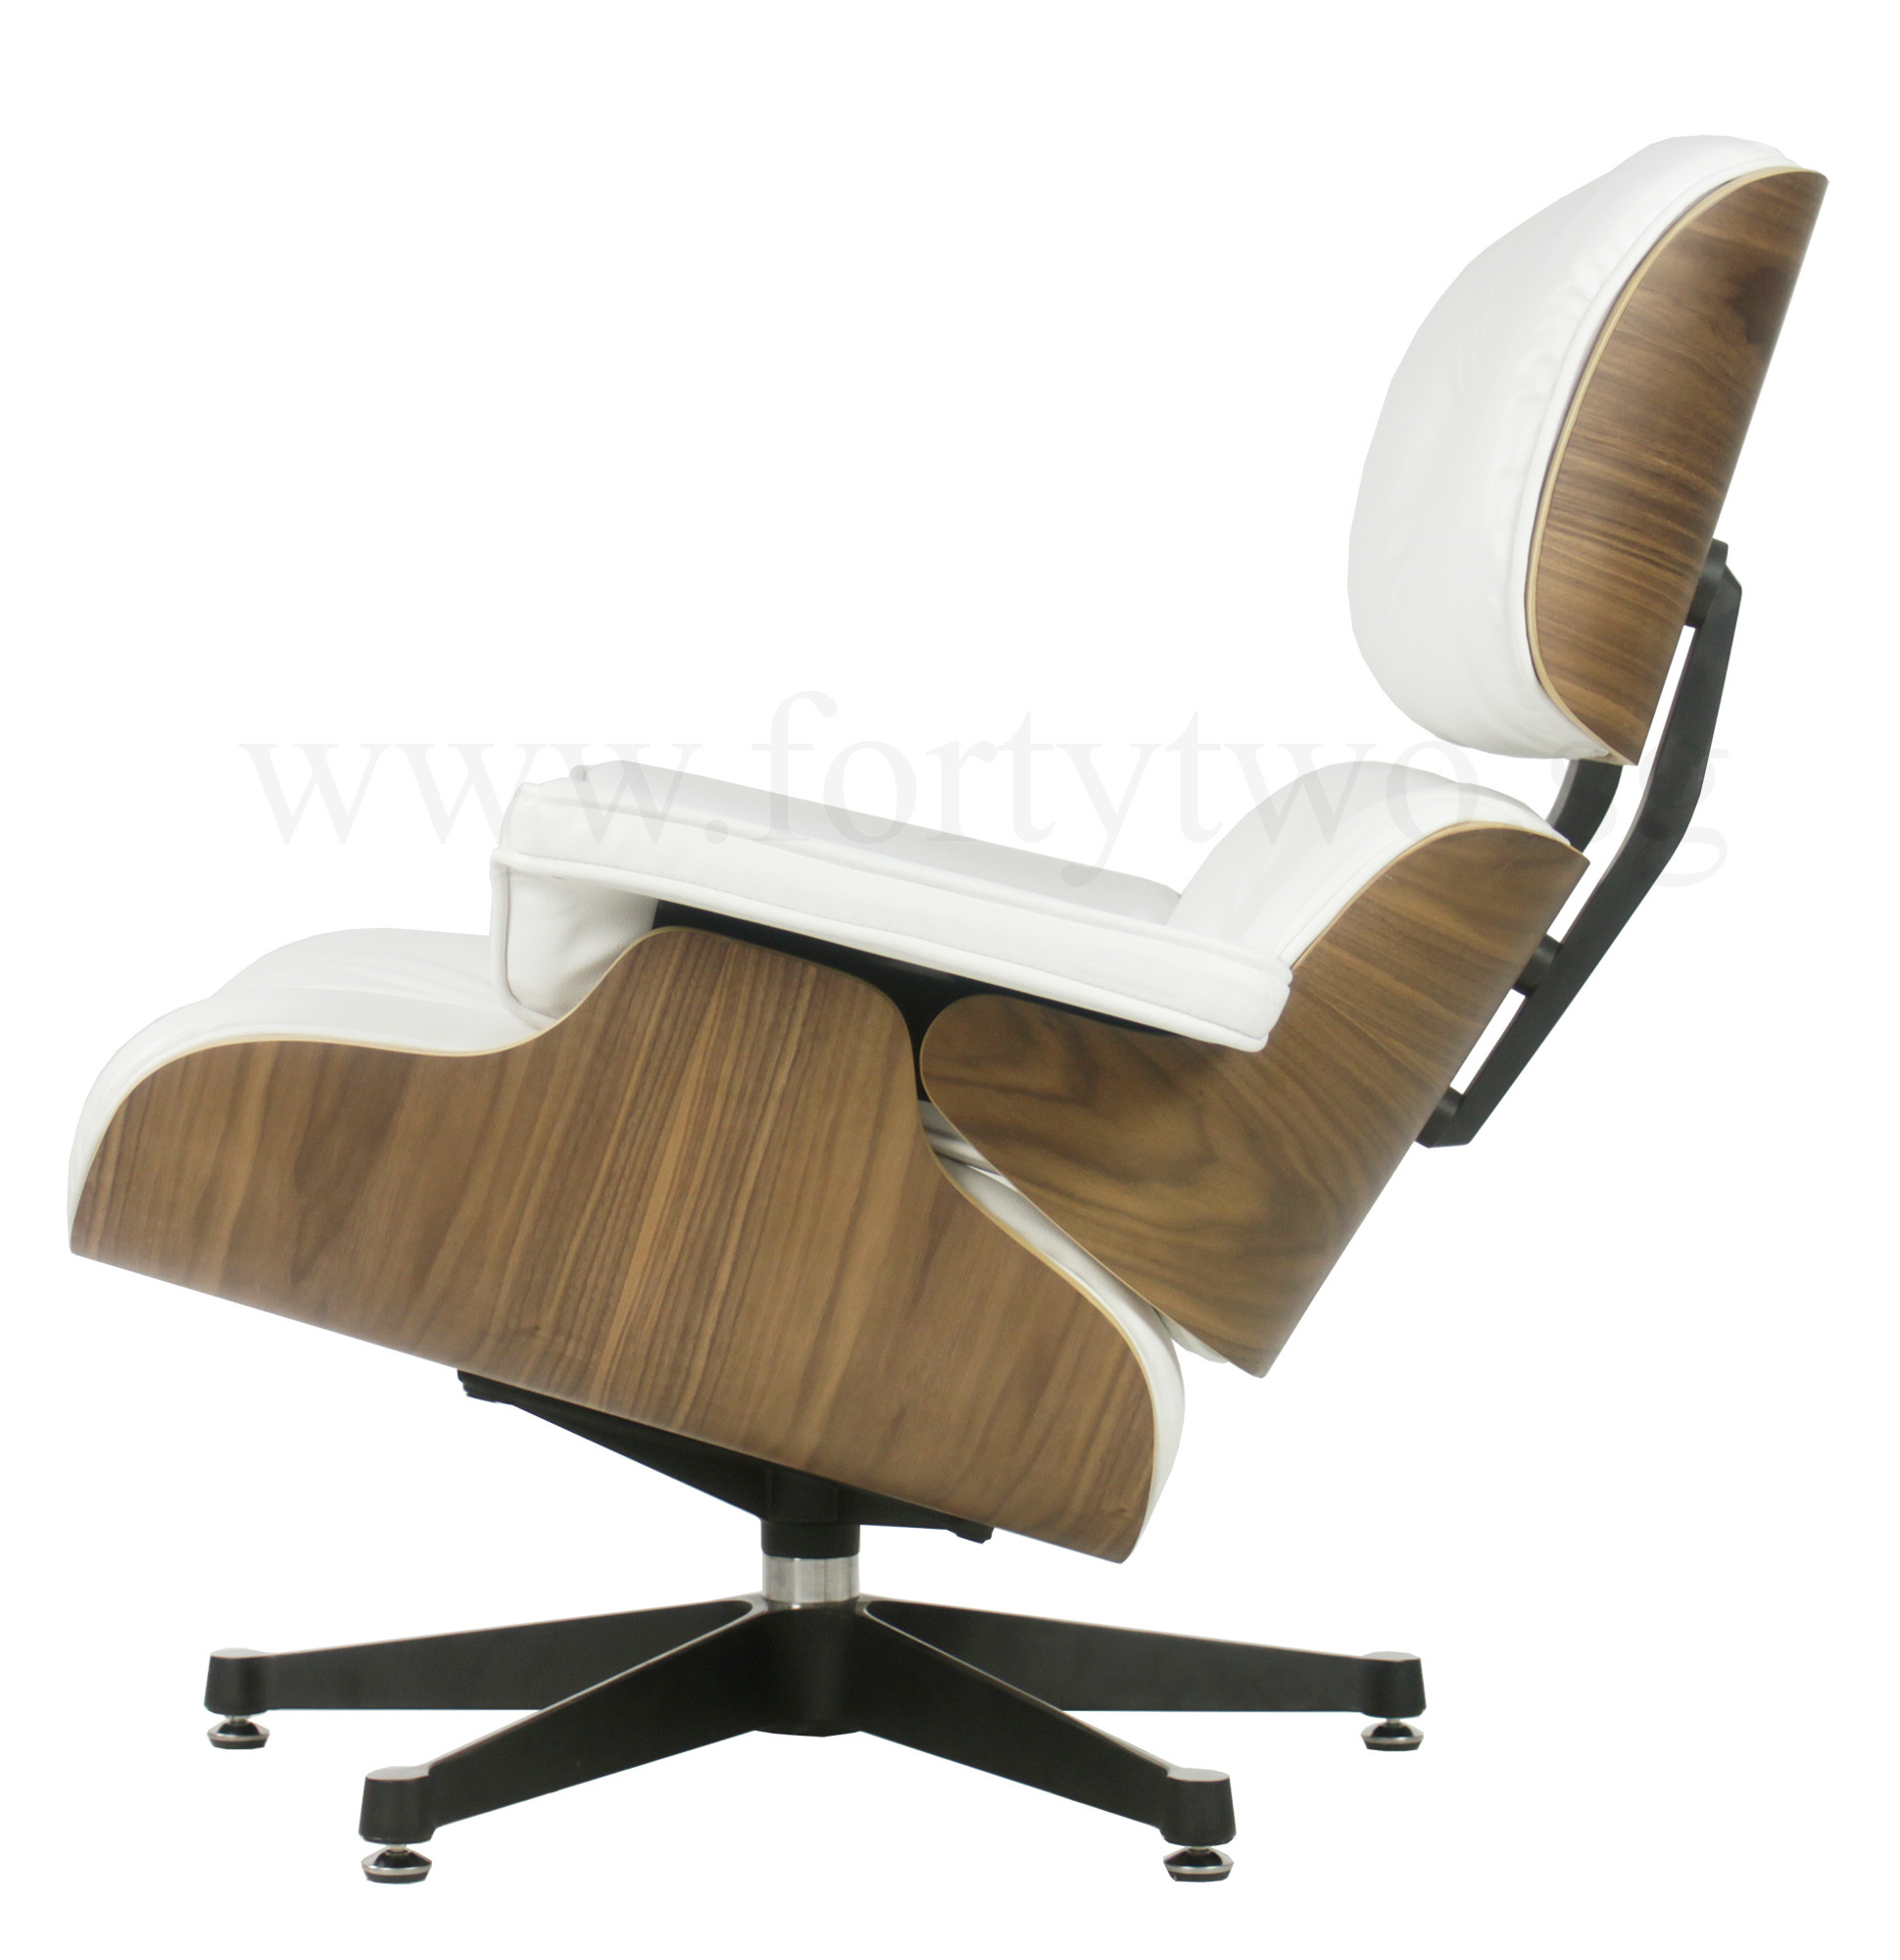 Eames Replica Lounge Chair White Leather Furniture